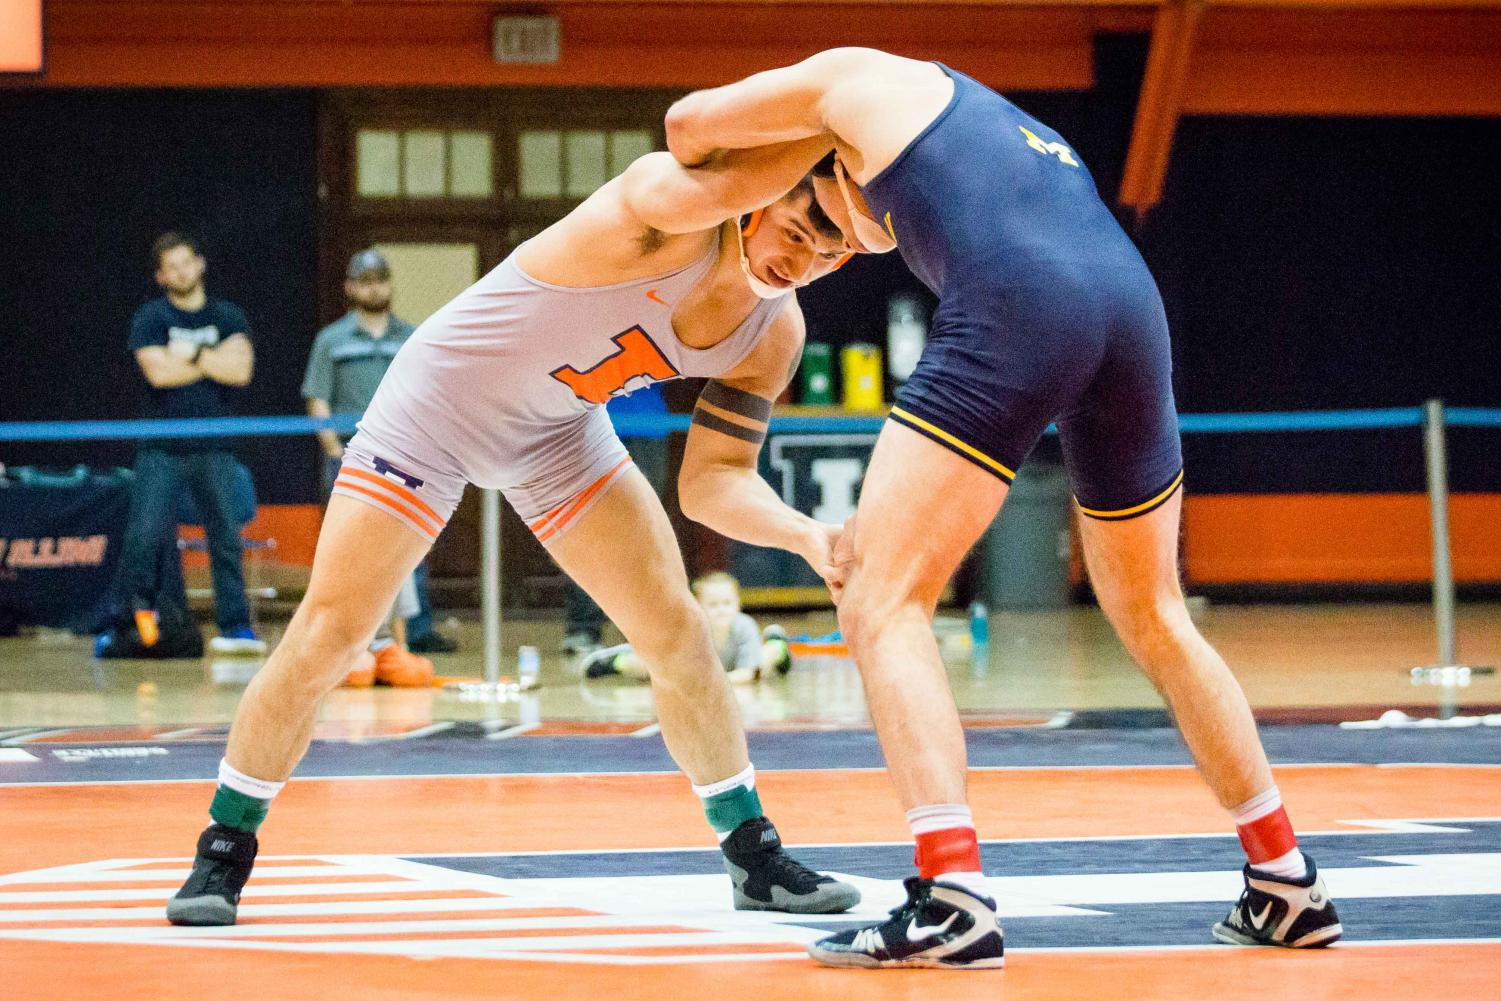 Illinois' Isaiah Martinez wrestles with Michigan's Logan Massa in the 165 pound weight class during the match at Huff Hall on Friday, Jan. 20. Martinez won by decision and the Illini defeated the Wolverines 34-6.